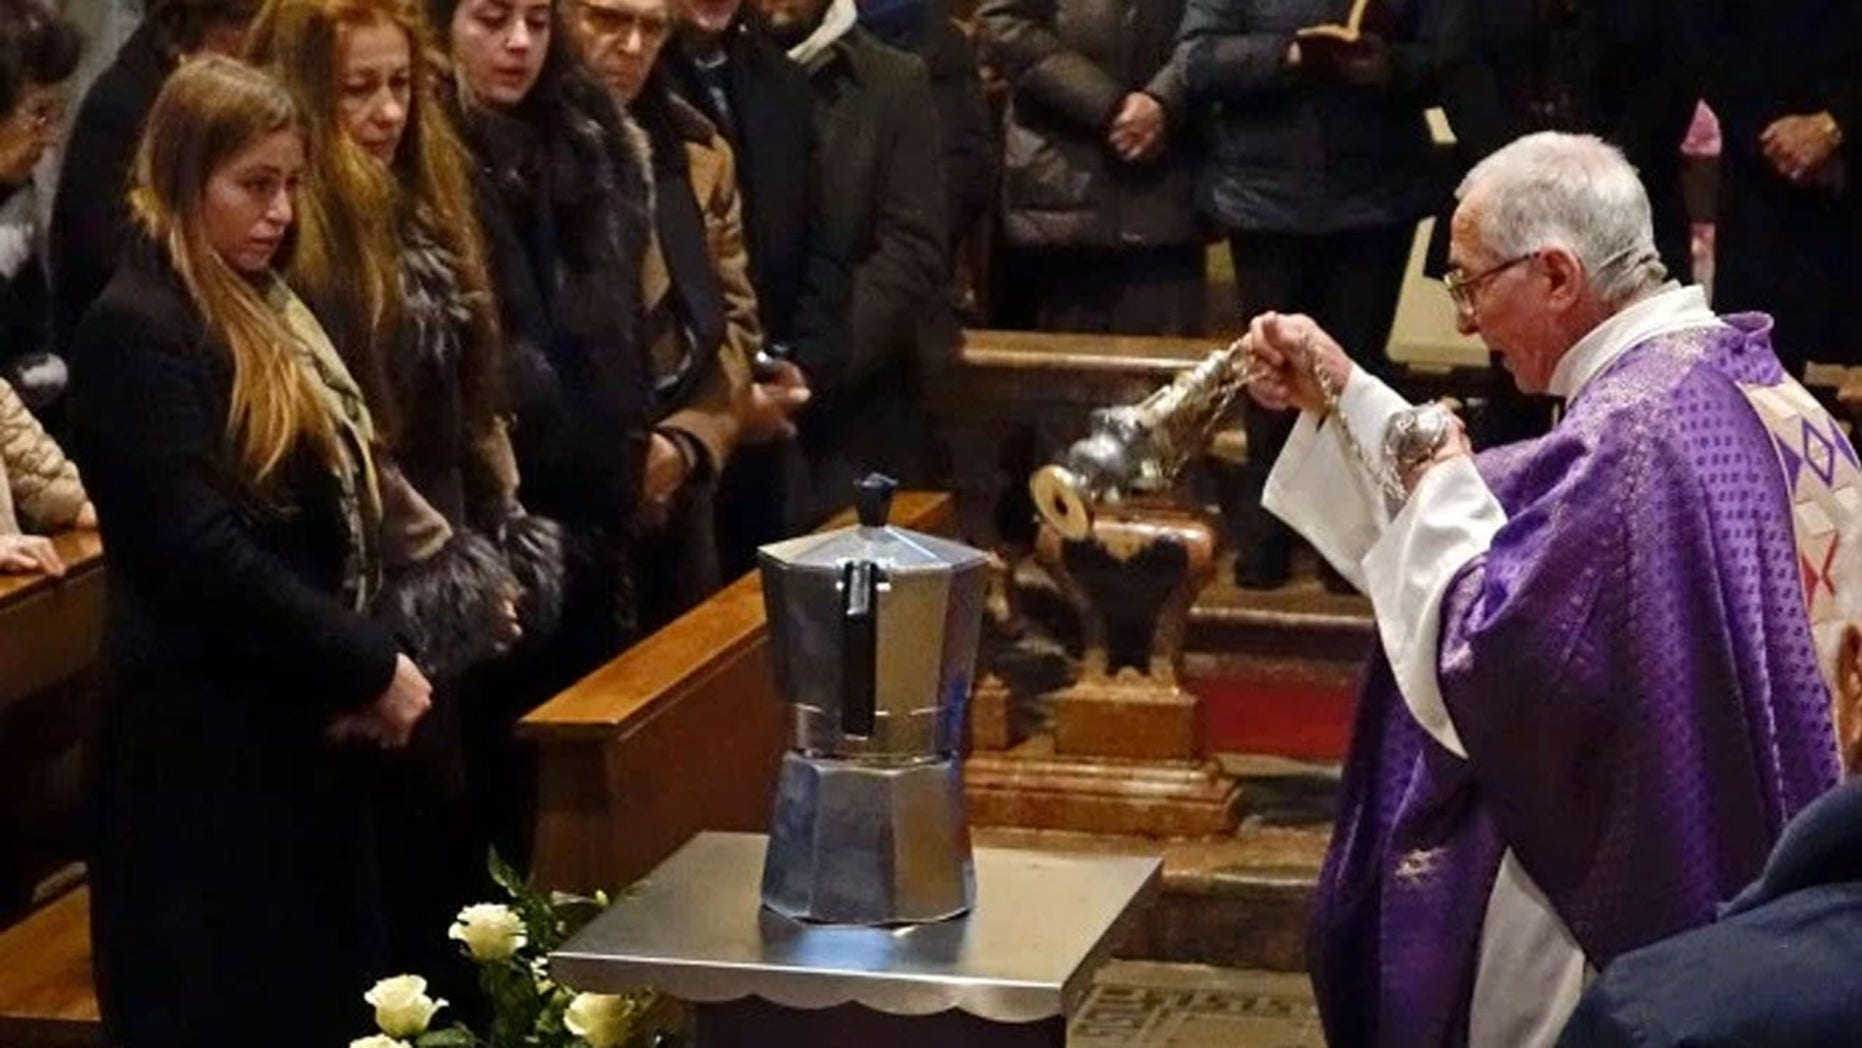 Renato Bialetti's ashes were buried in a stovetop espresso maker.